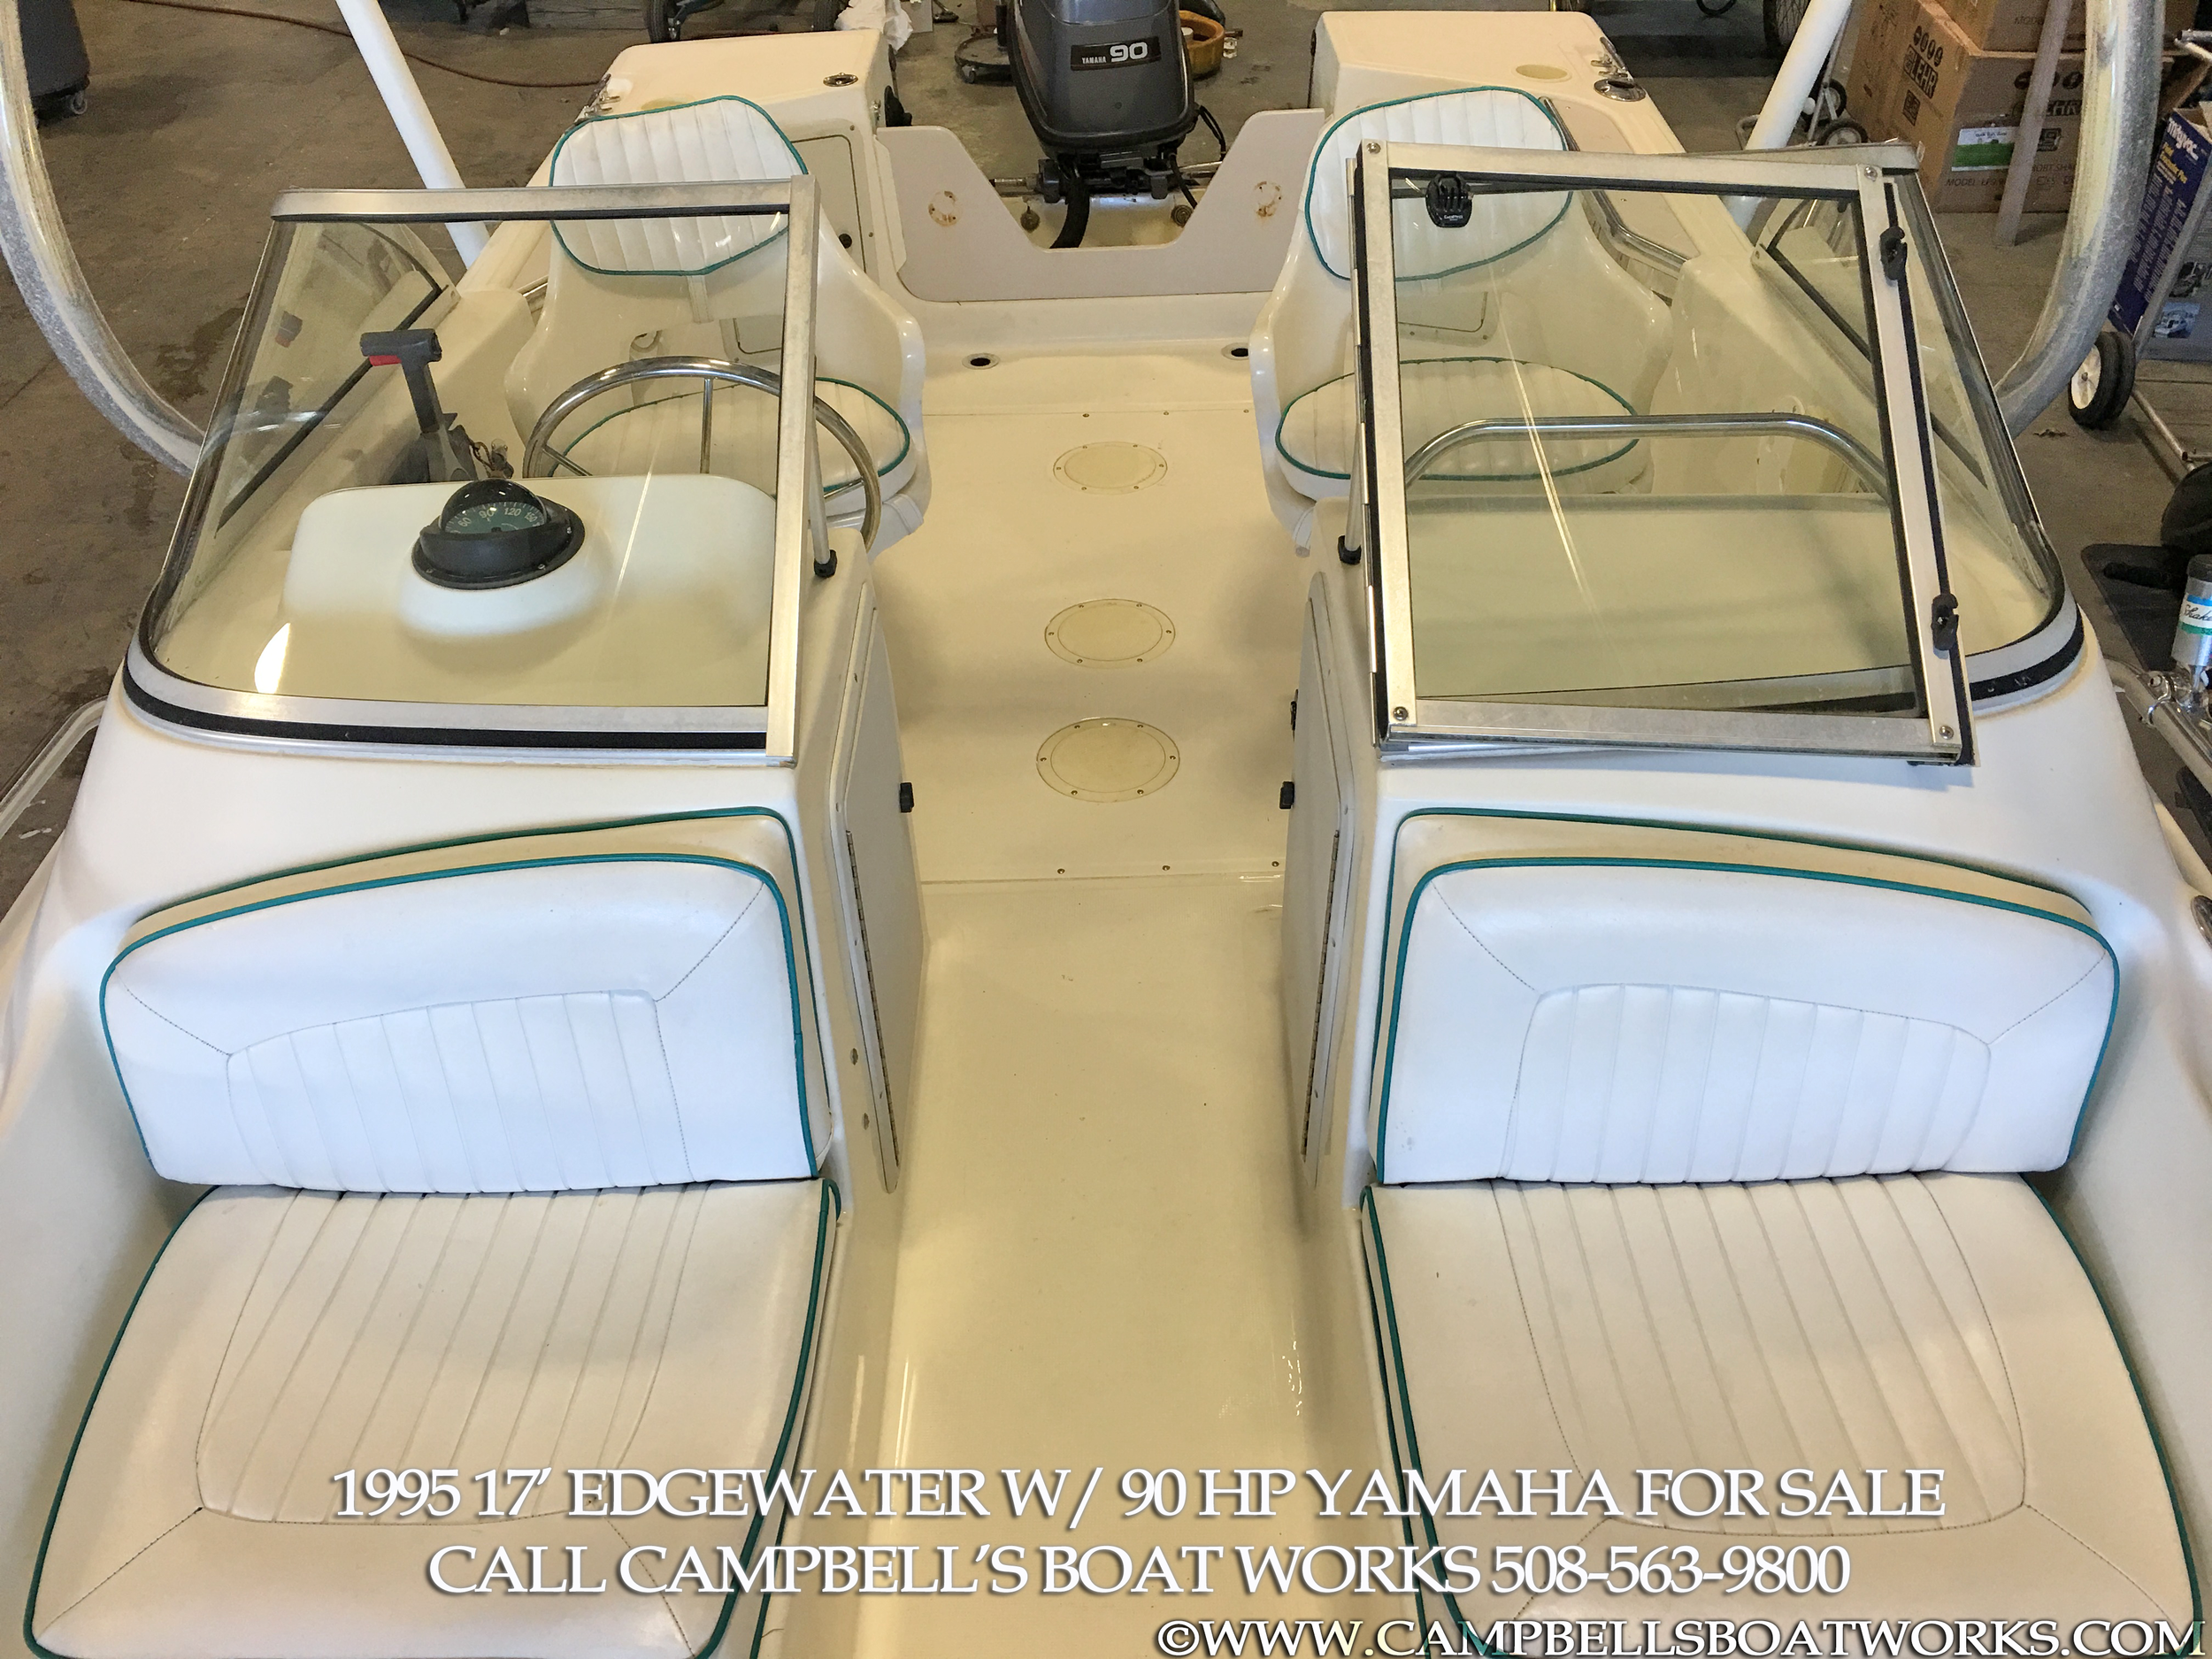 edgewater-17-foot-boat-for-sale-yamaha-outboard.png